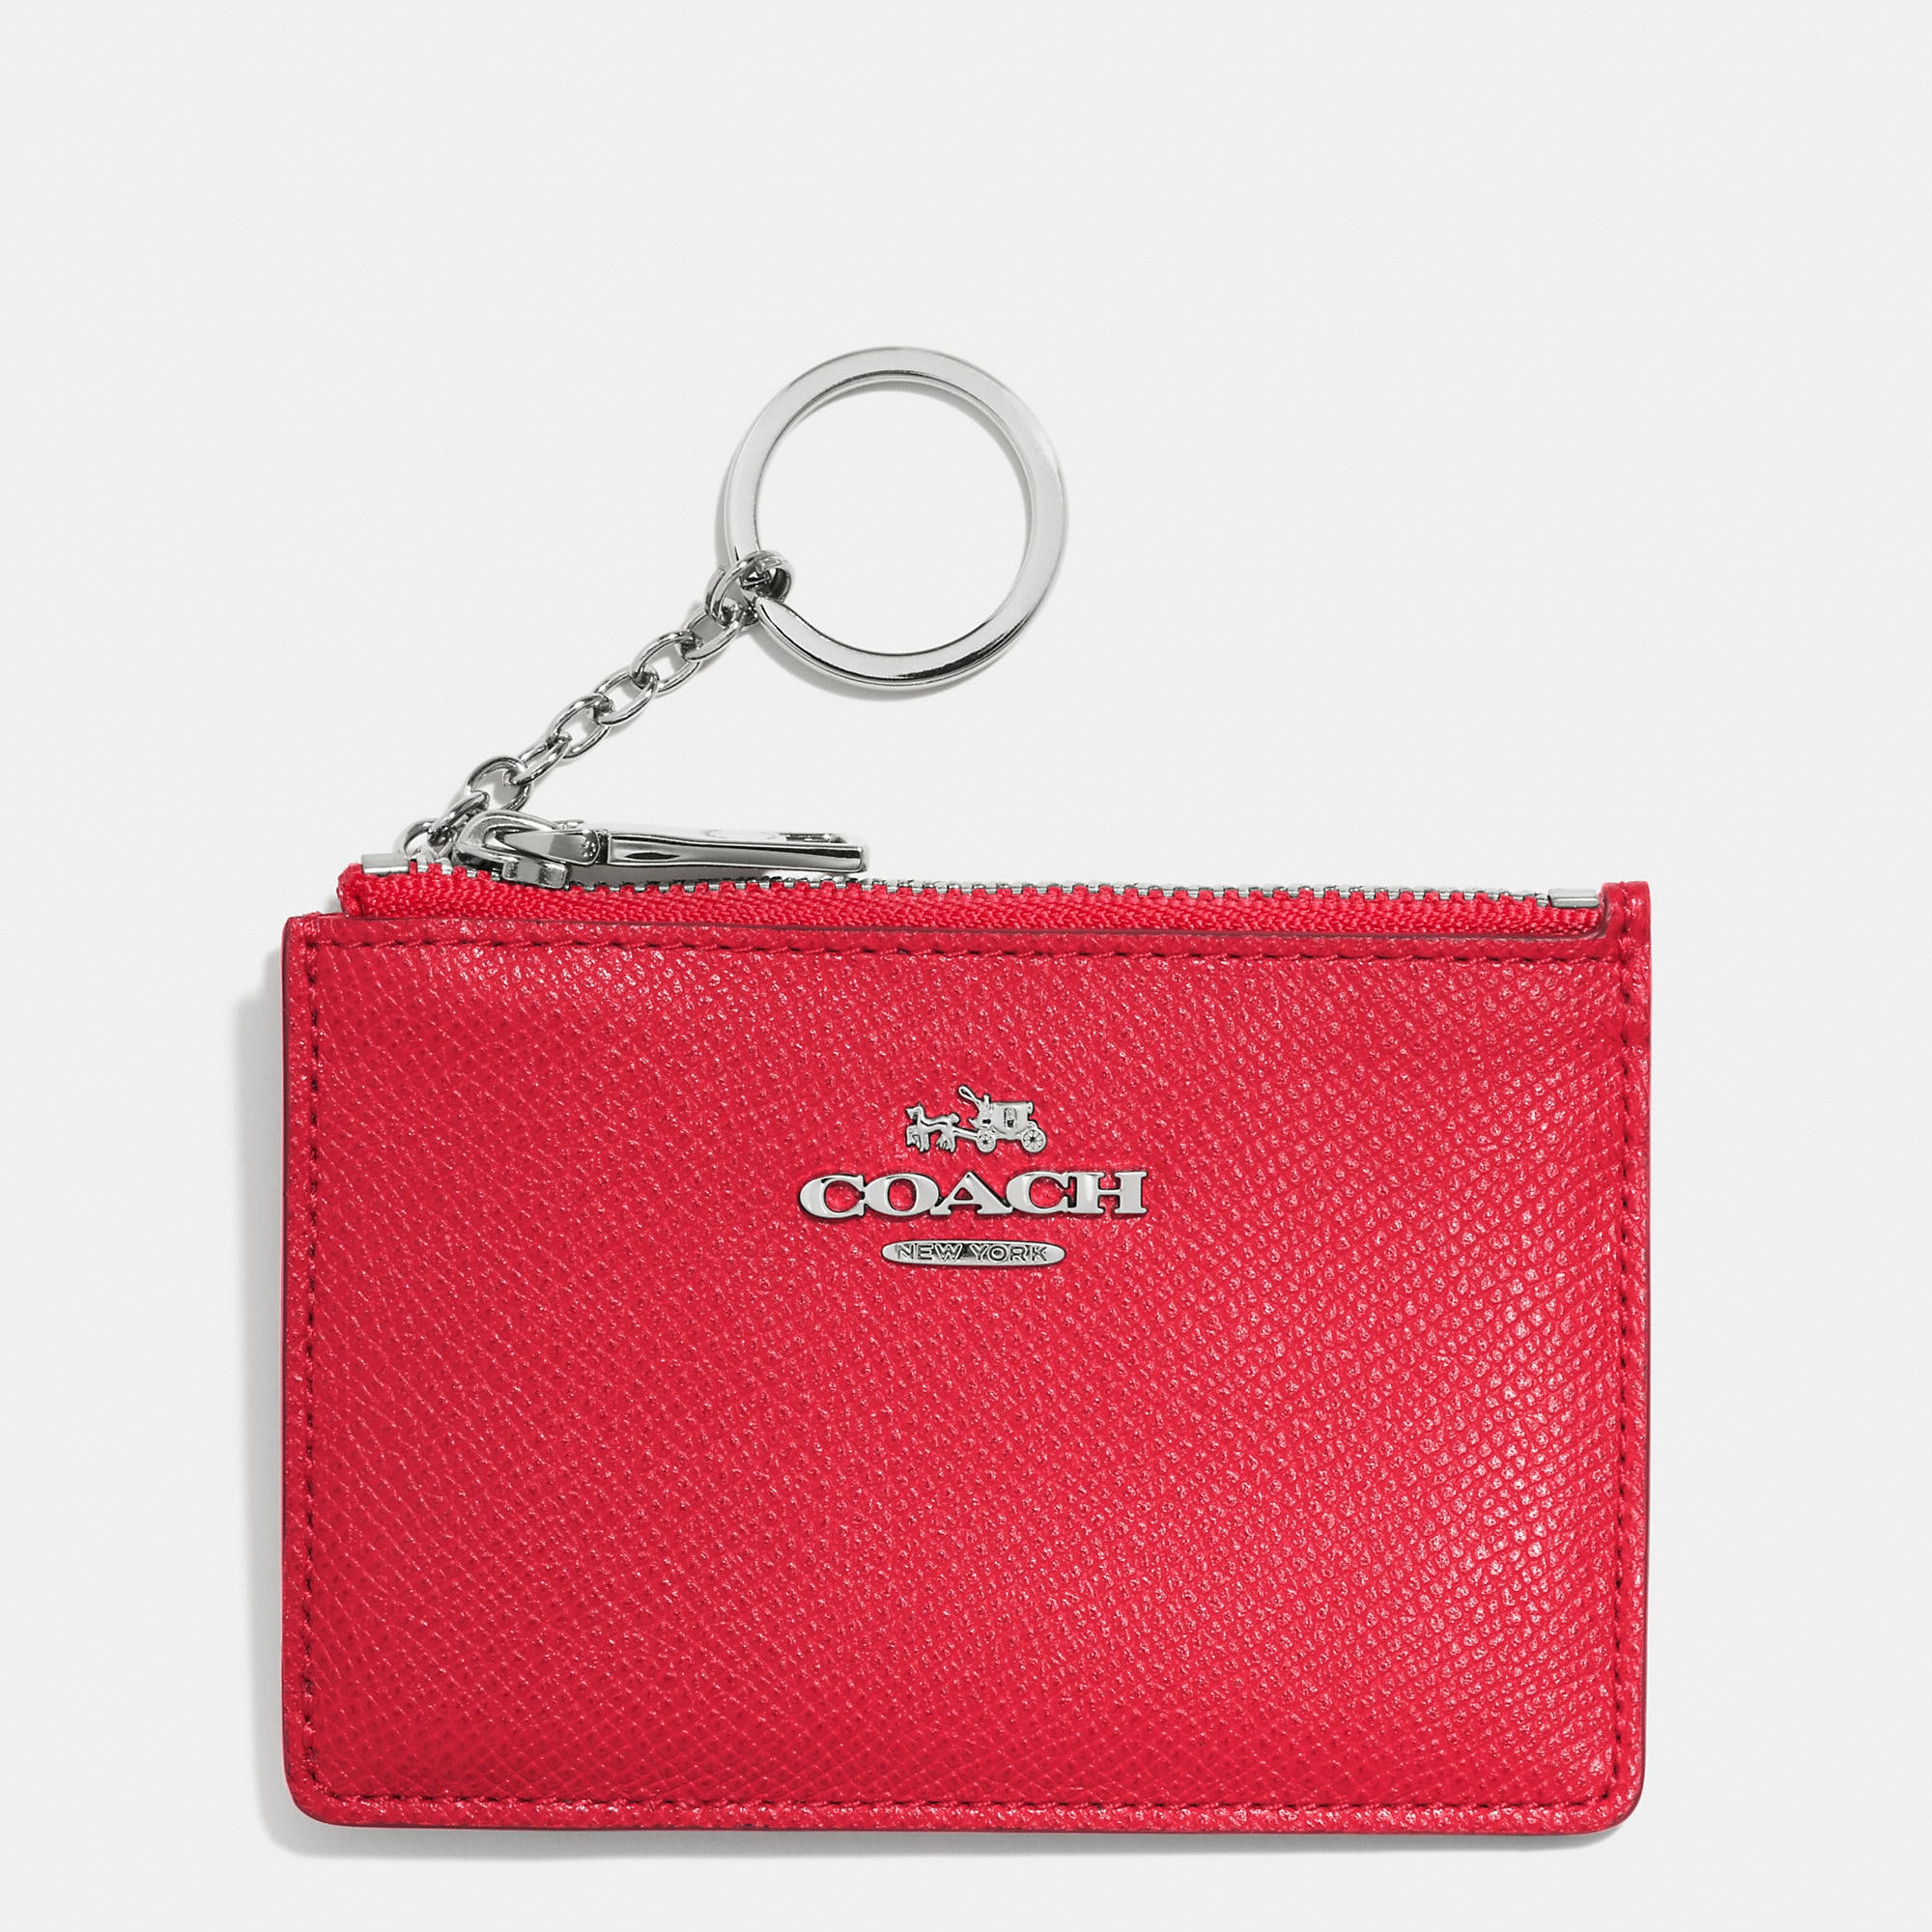 Coach Mini Skinny In Embossed Textured Leather